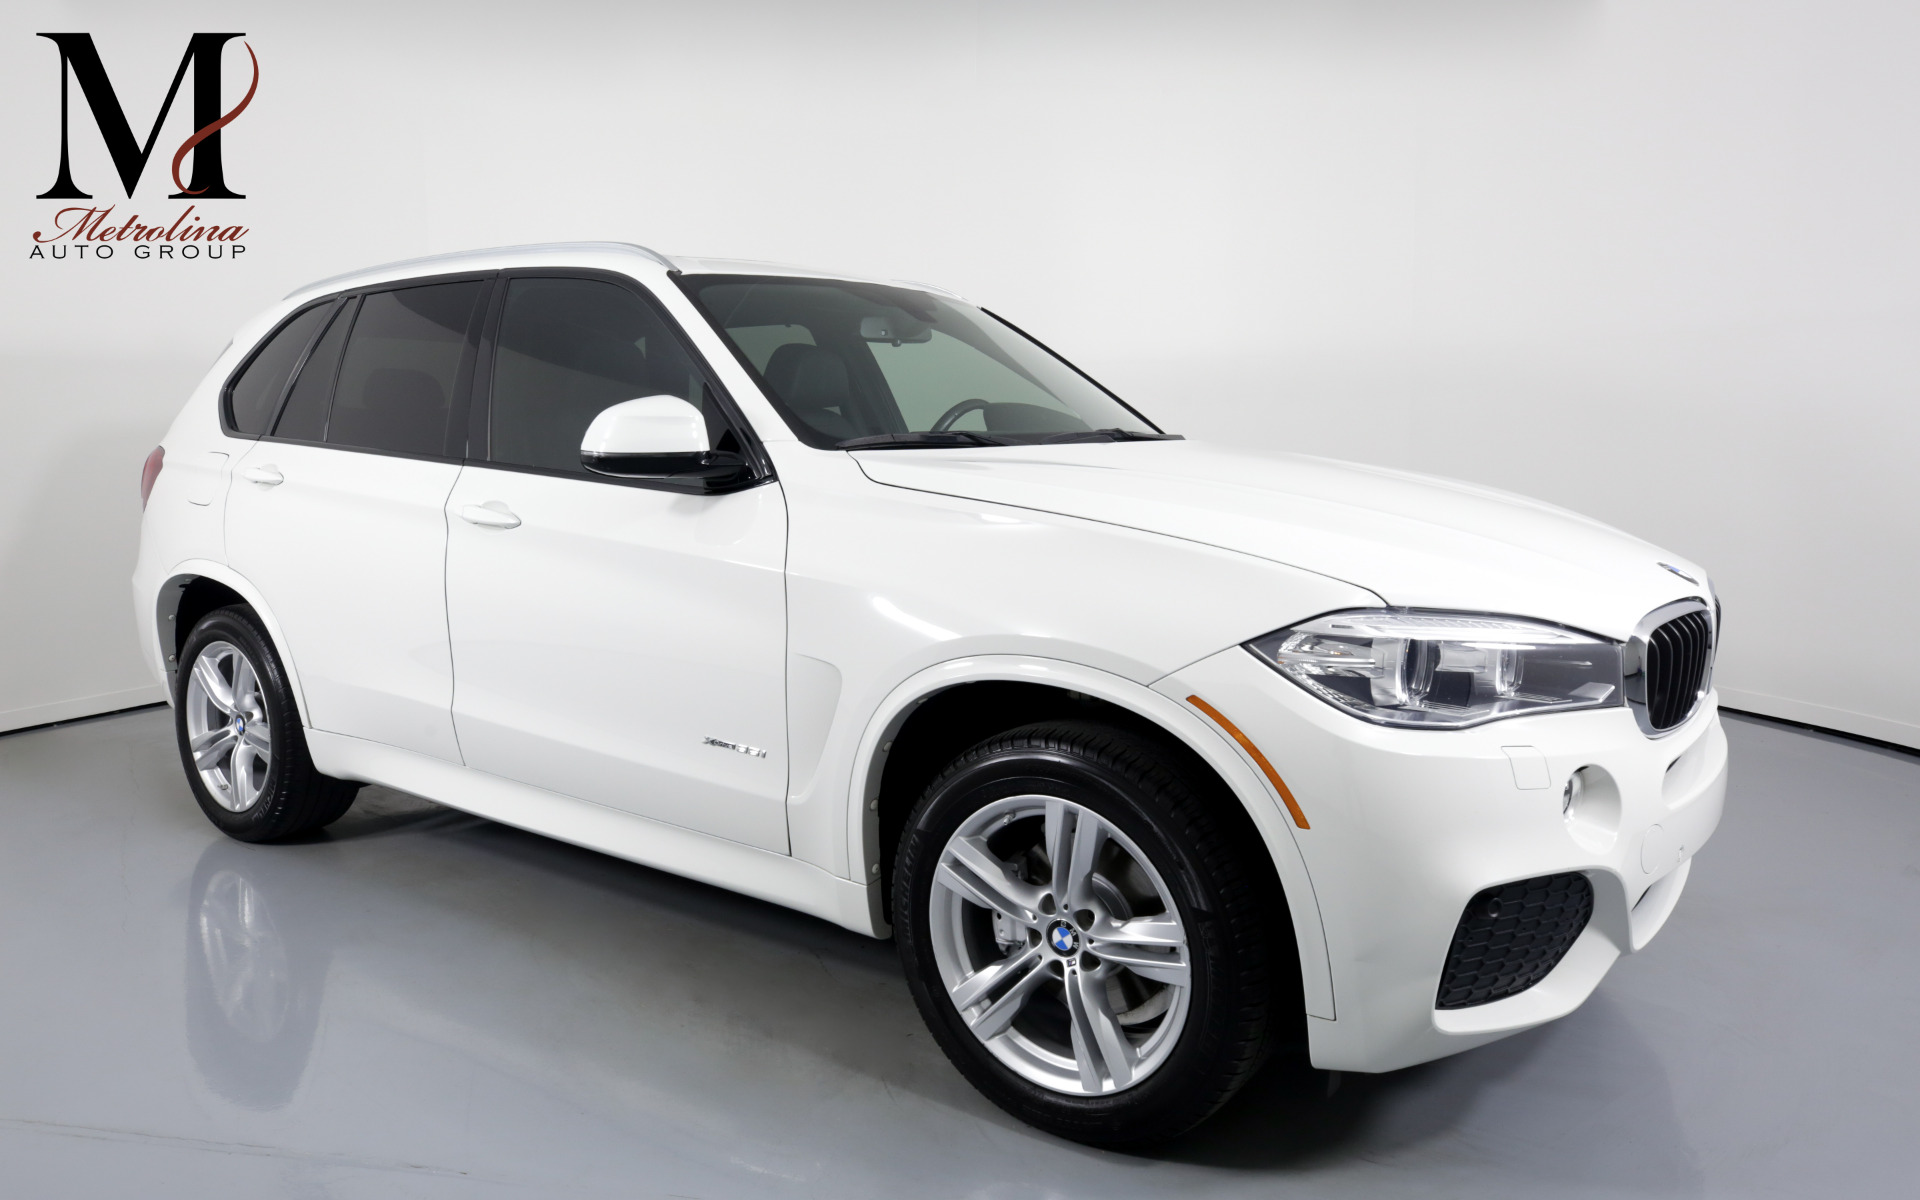 Used 2017 BMW X5 xDrive35i for sale $34,996 at Metrolina Auto Group in Charlotte NC 28217 - 1